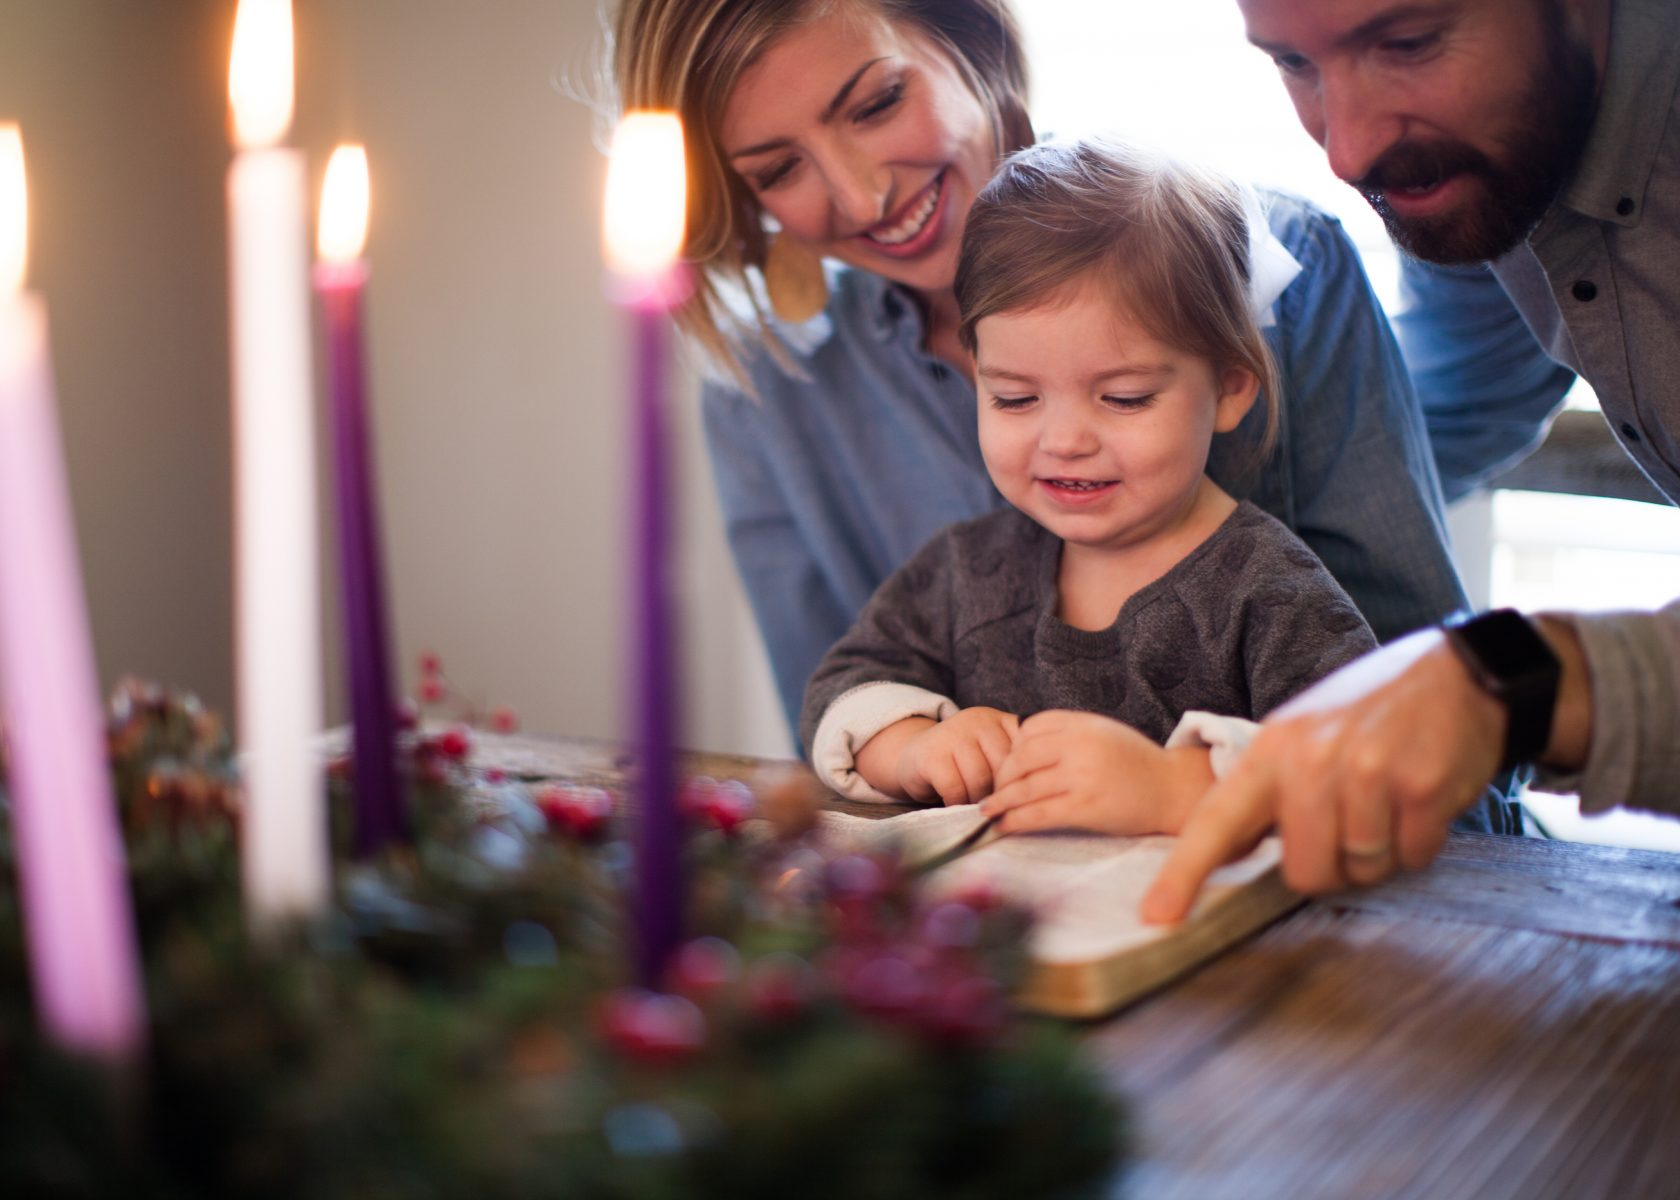 Advent: A Time of Attentive Preparation and Waiting